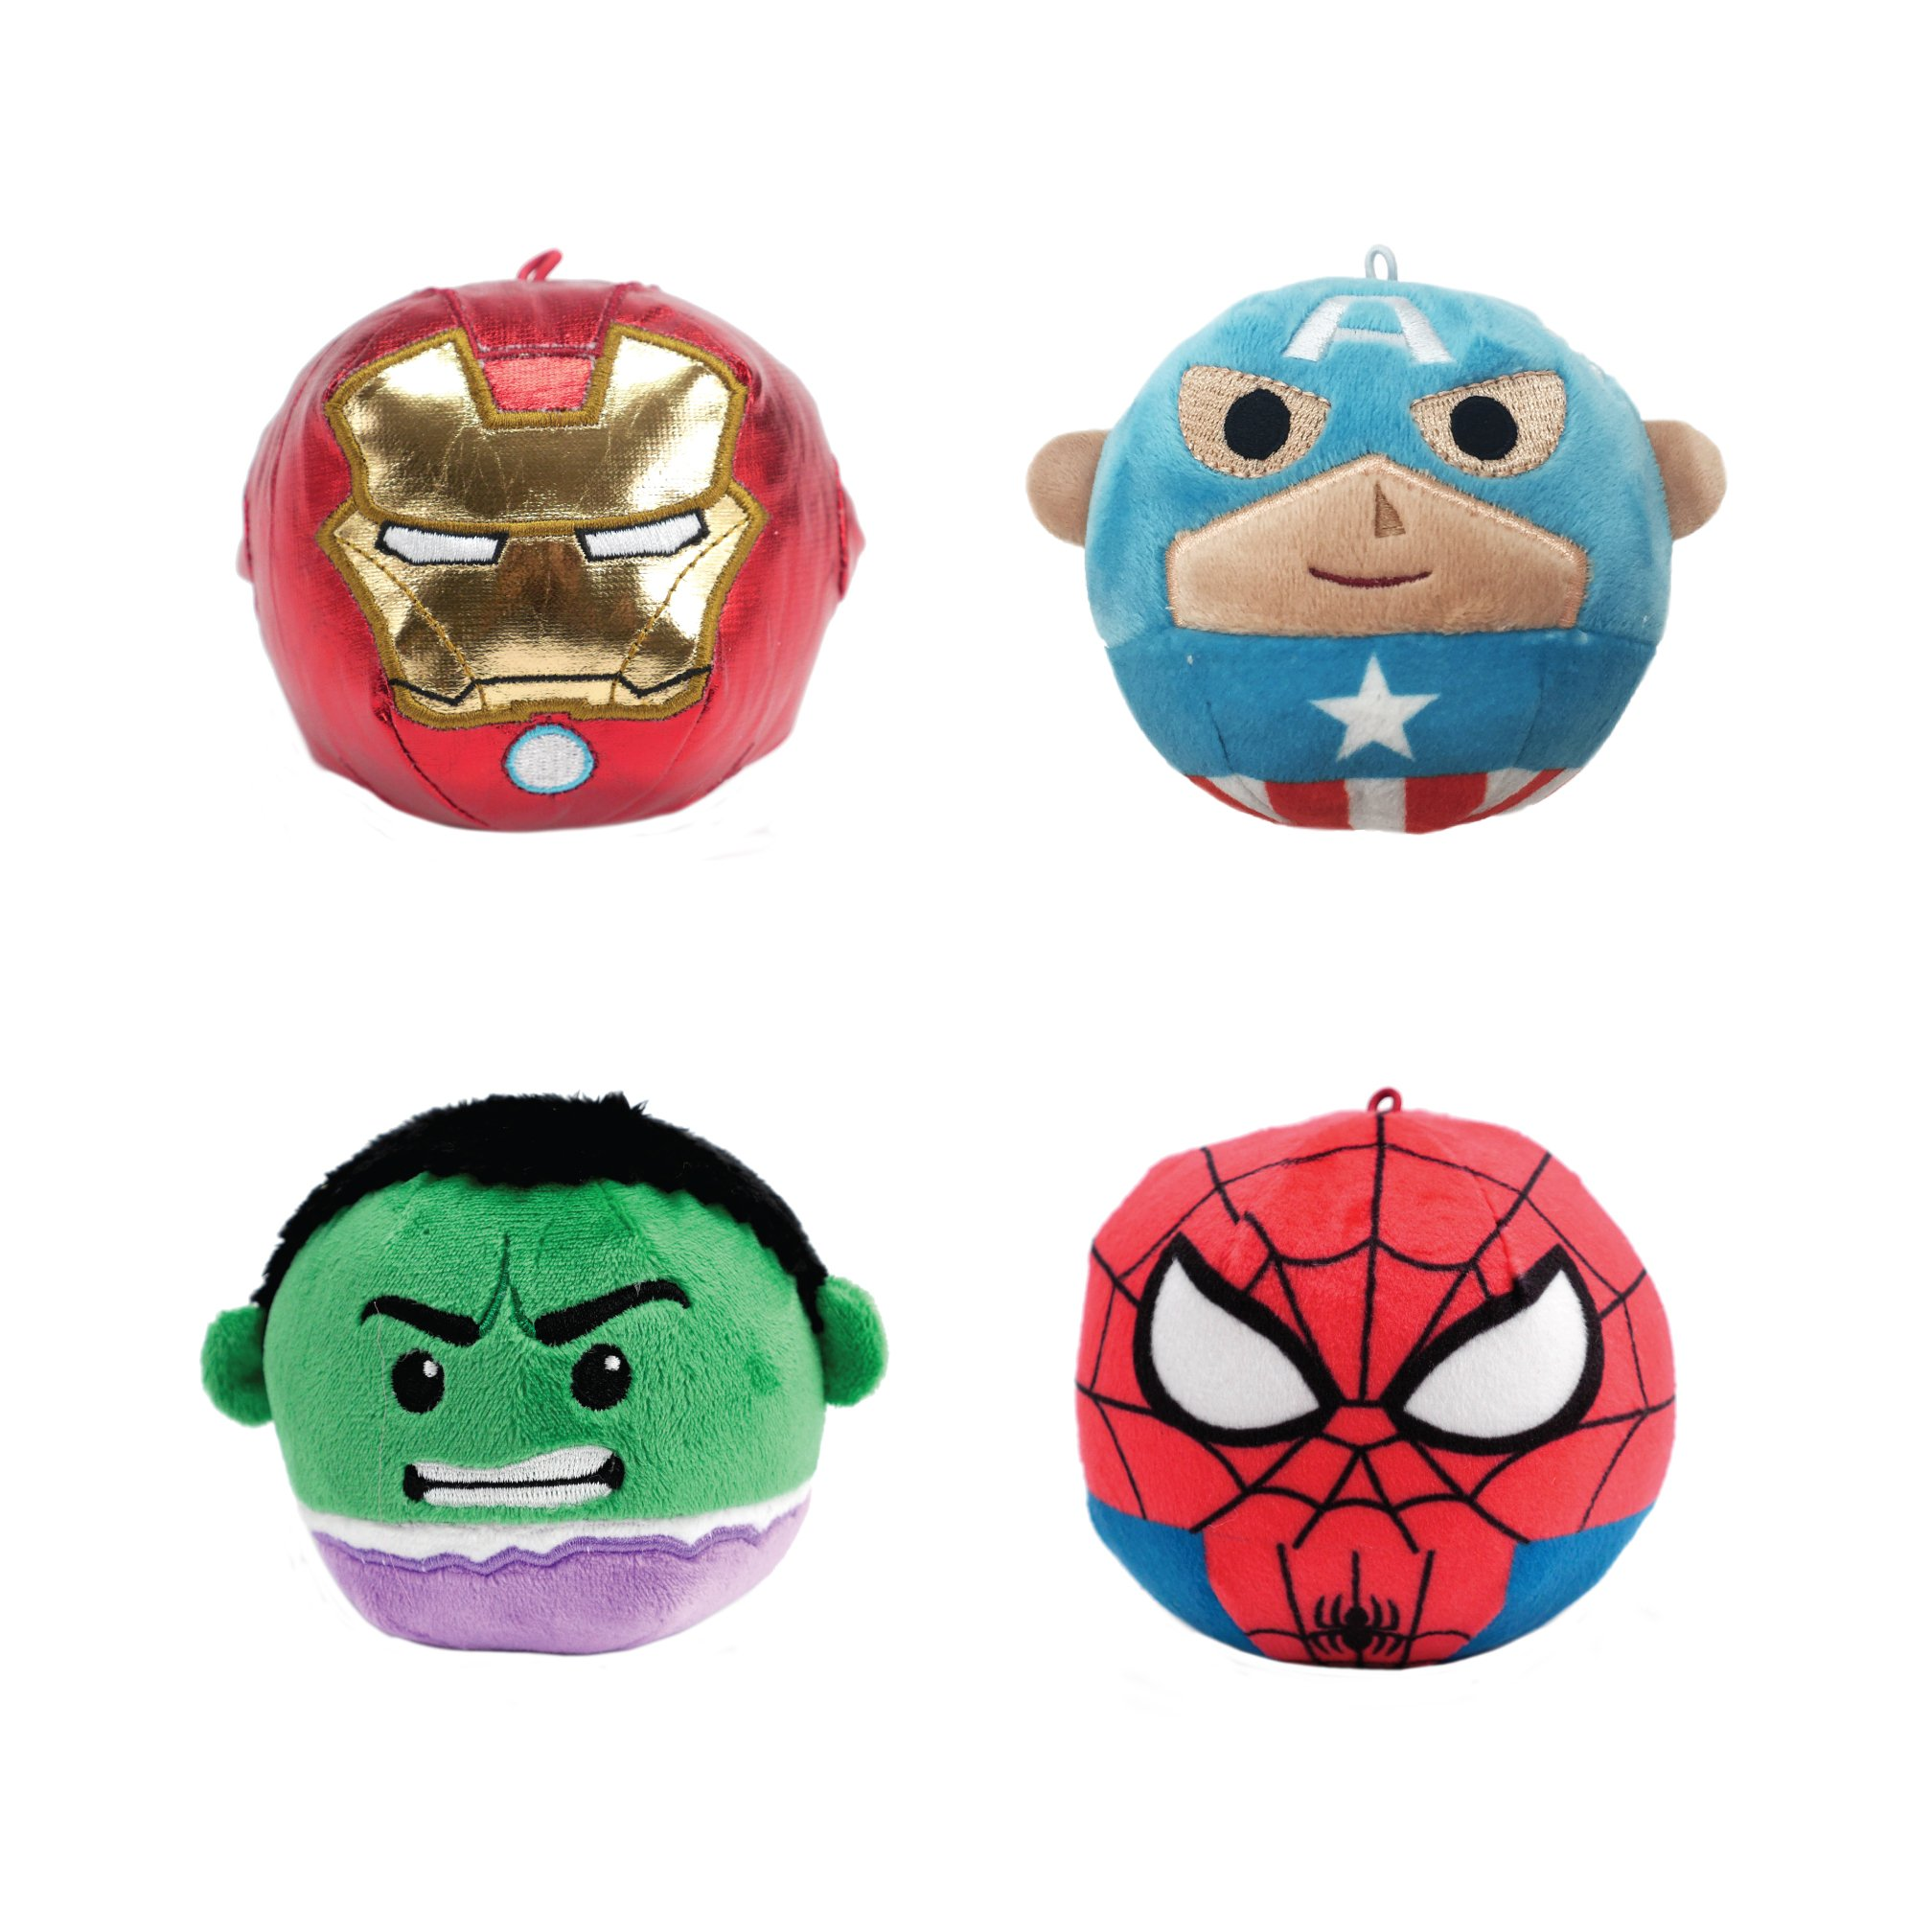 Marvel Fluffball Ornament 4 Pack - Spiderman, Captain America, The Hulk and Iron Man